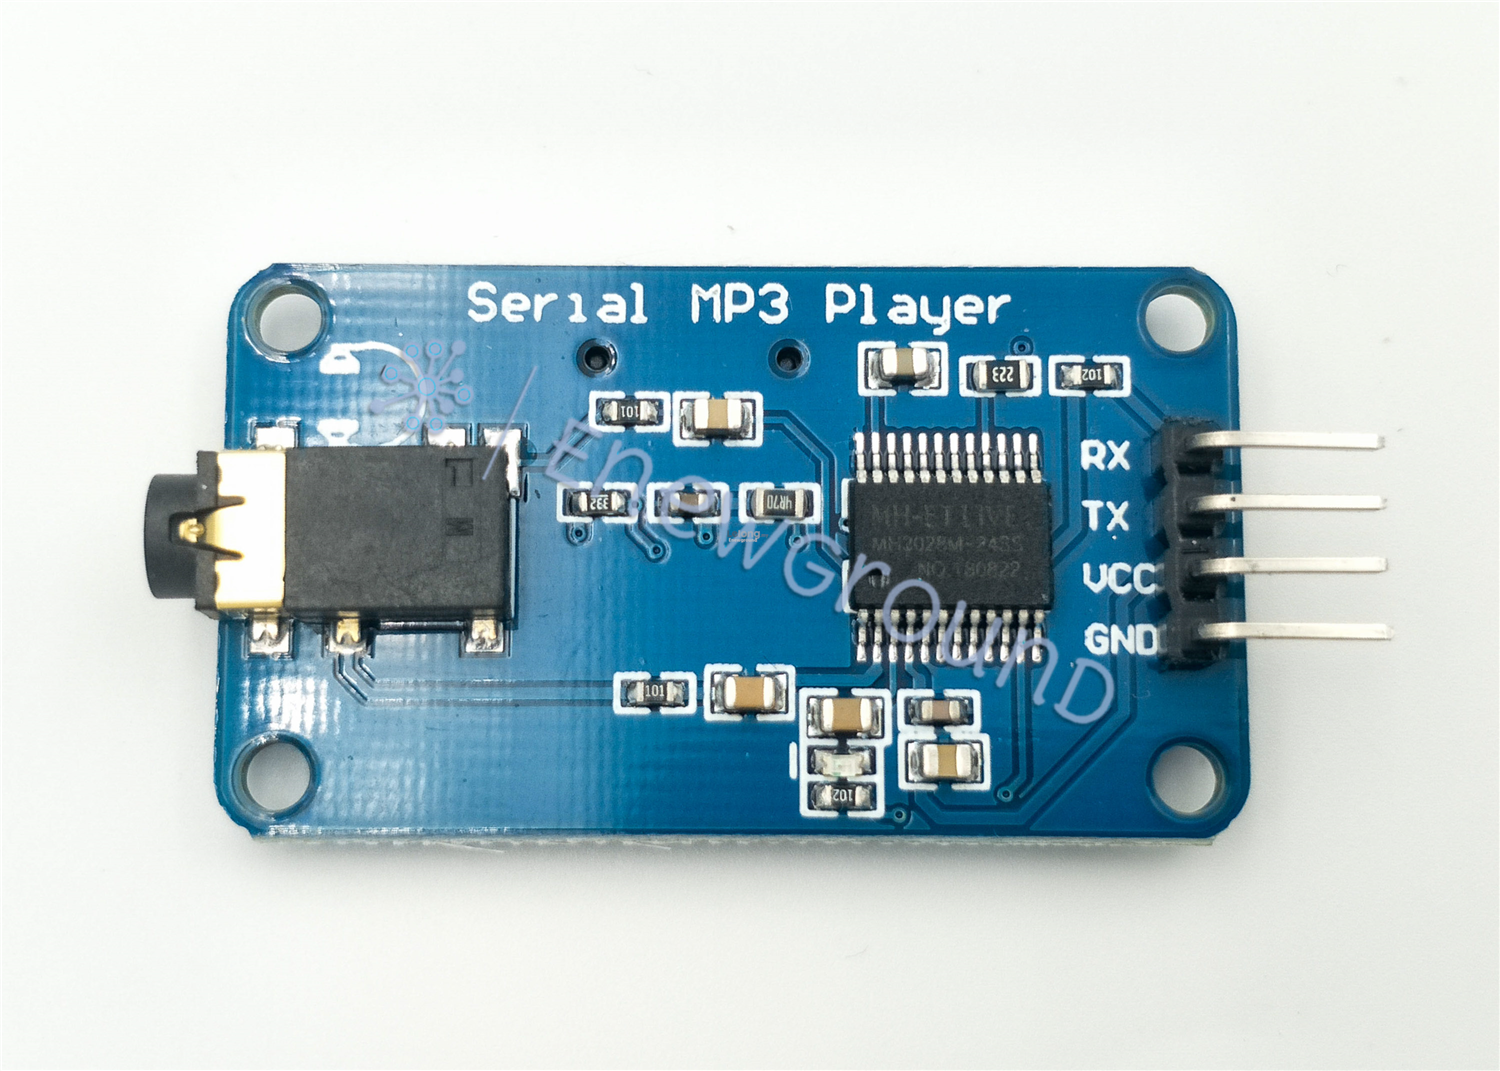 Serial MP3 player with microSD slot (UART serial, Micro SDHC, YX6300)